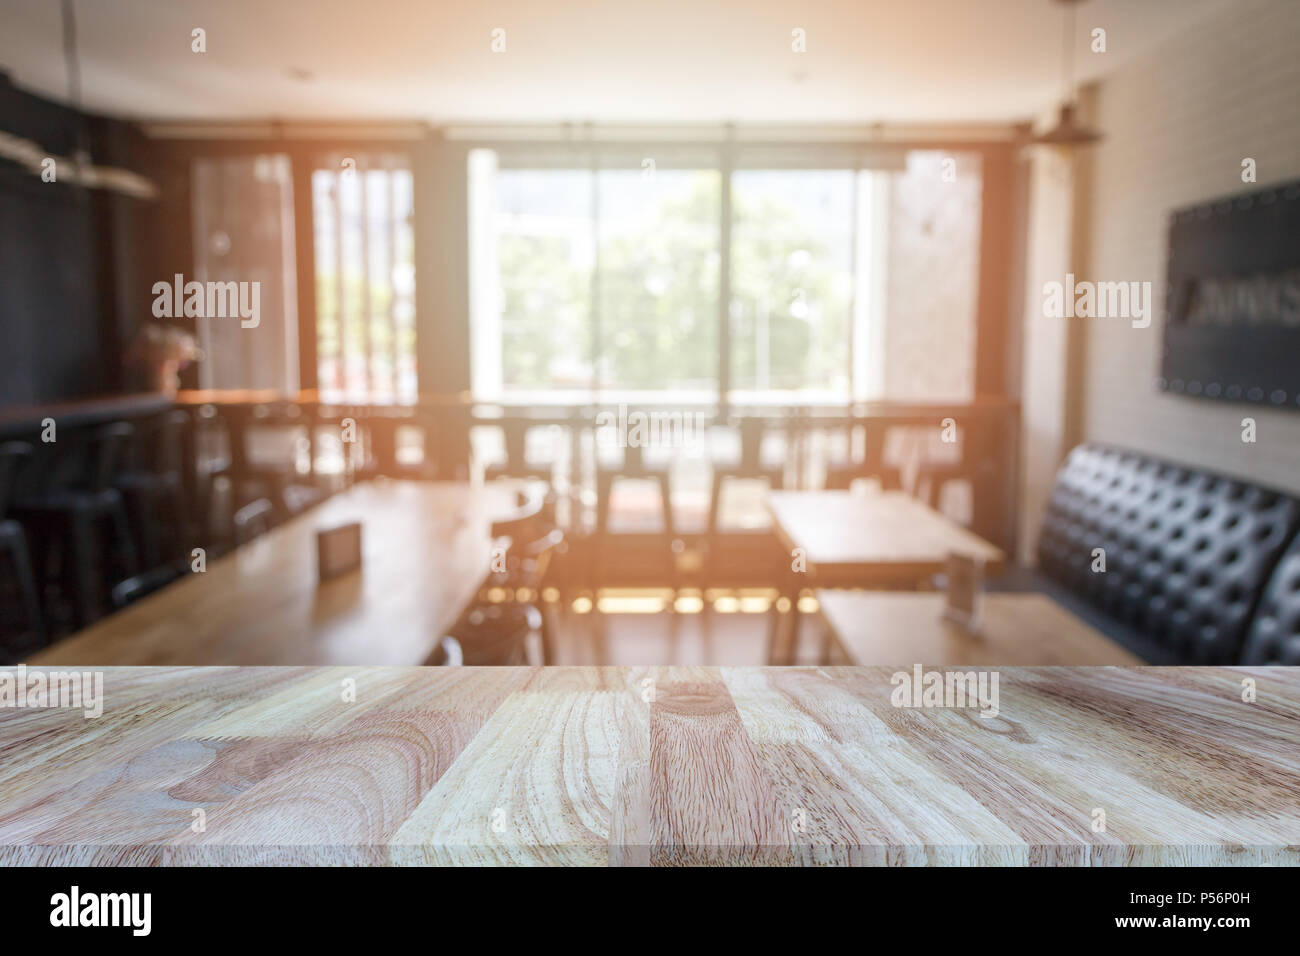 Wooden Tabletop On Blurred Restaurant Or Coffee Shop Background Can Be Used For Display Or Montage Your Products Stock Photo Alamy